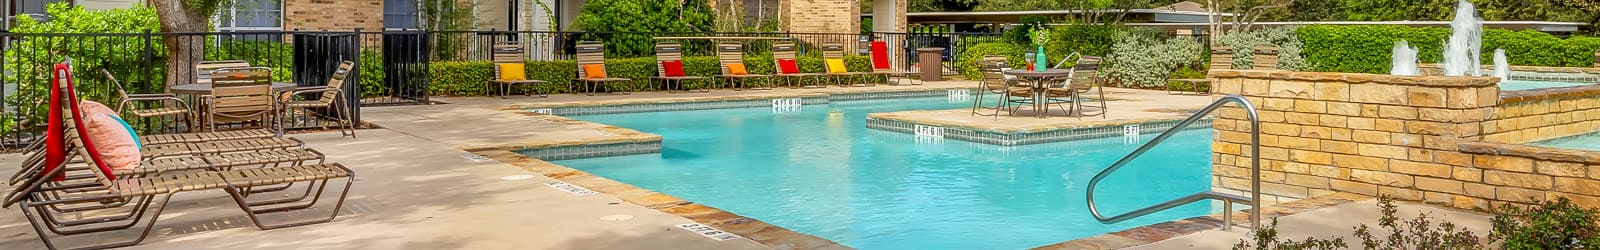 Schedule a tour at Stoneybrook Apartments & Townhomes in San Antonio, Texas